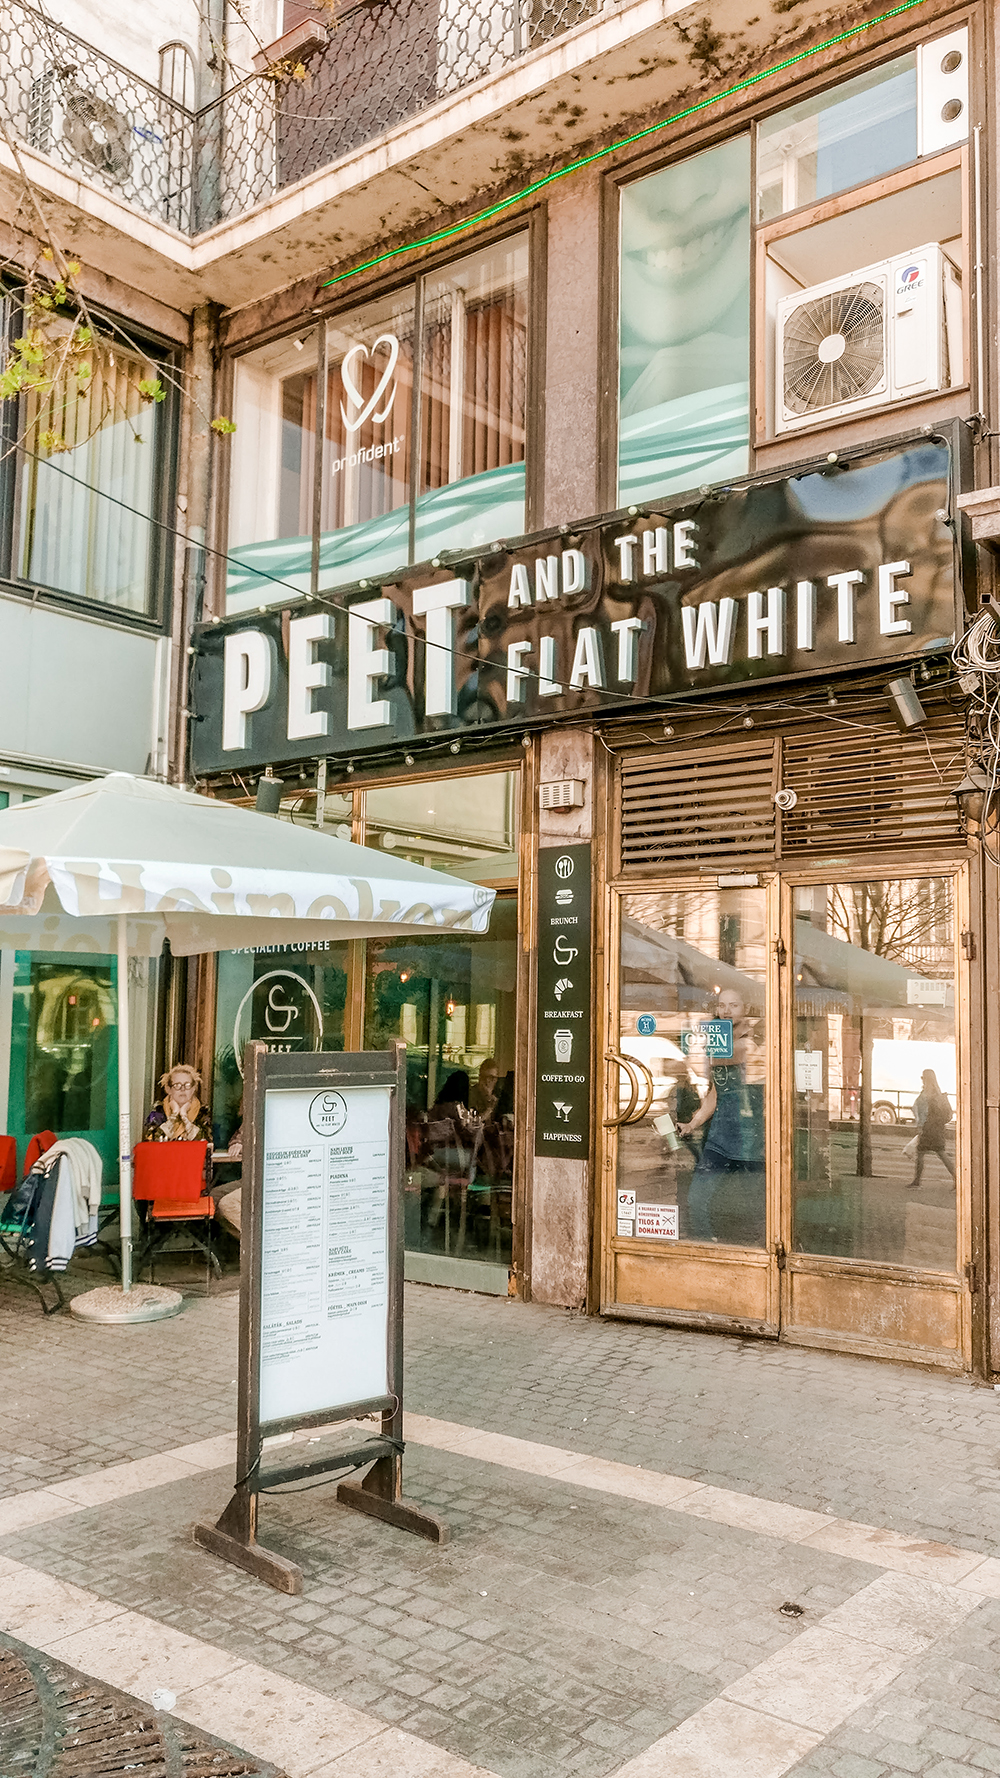 Peet and the Flat white - Budapest's best breakfast & brunch places in the centre - Deák Ferenc square and Astoria | Aliz's Wonderland